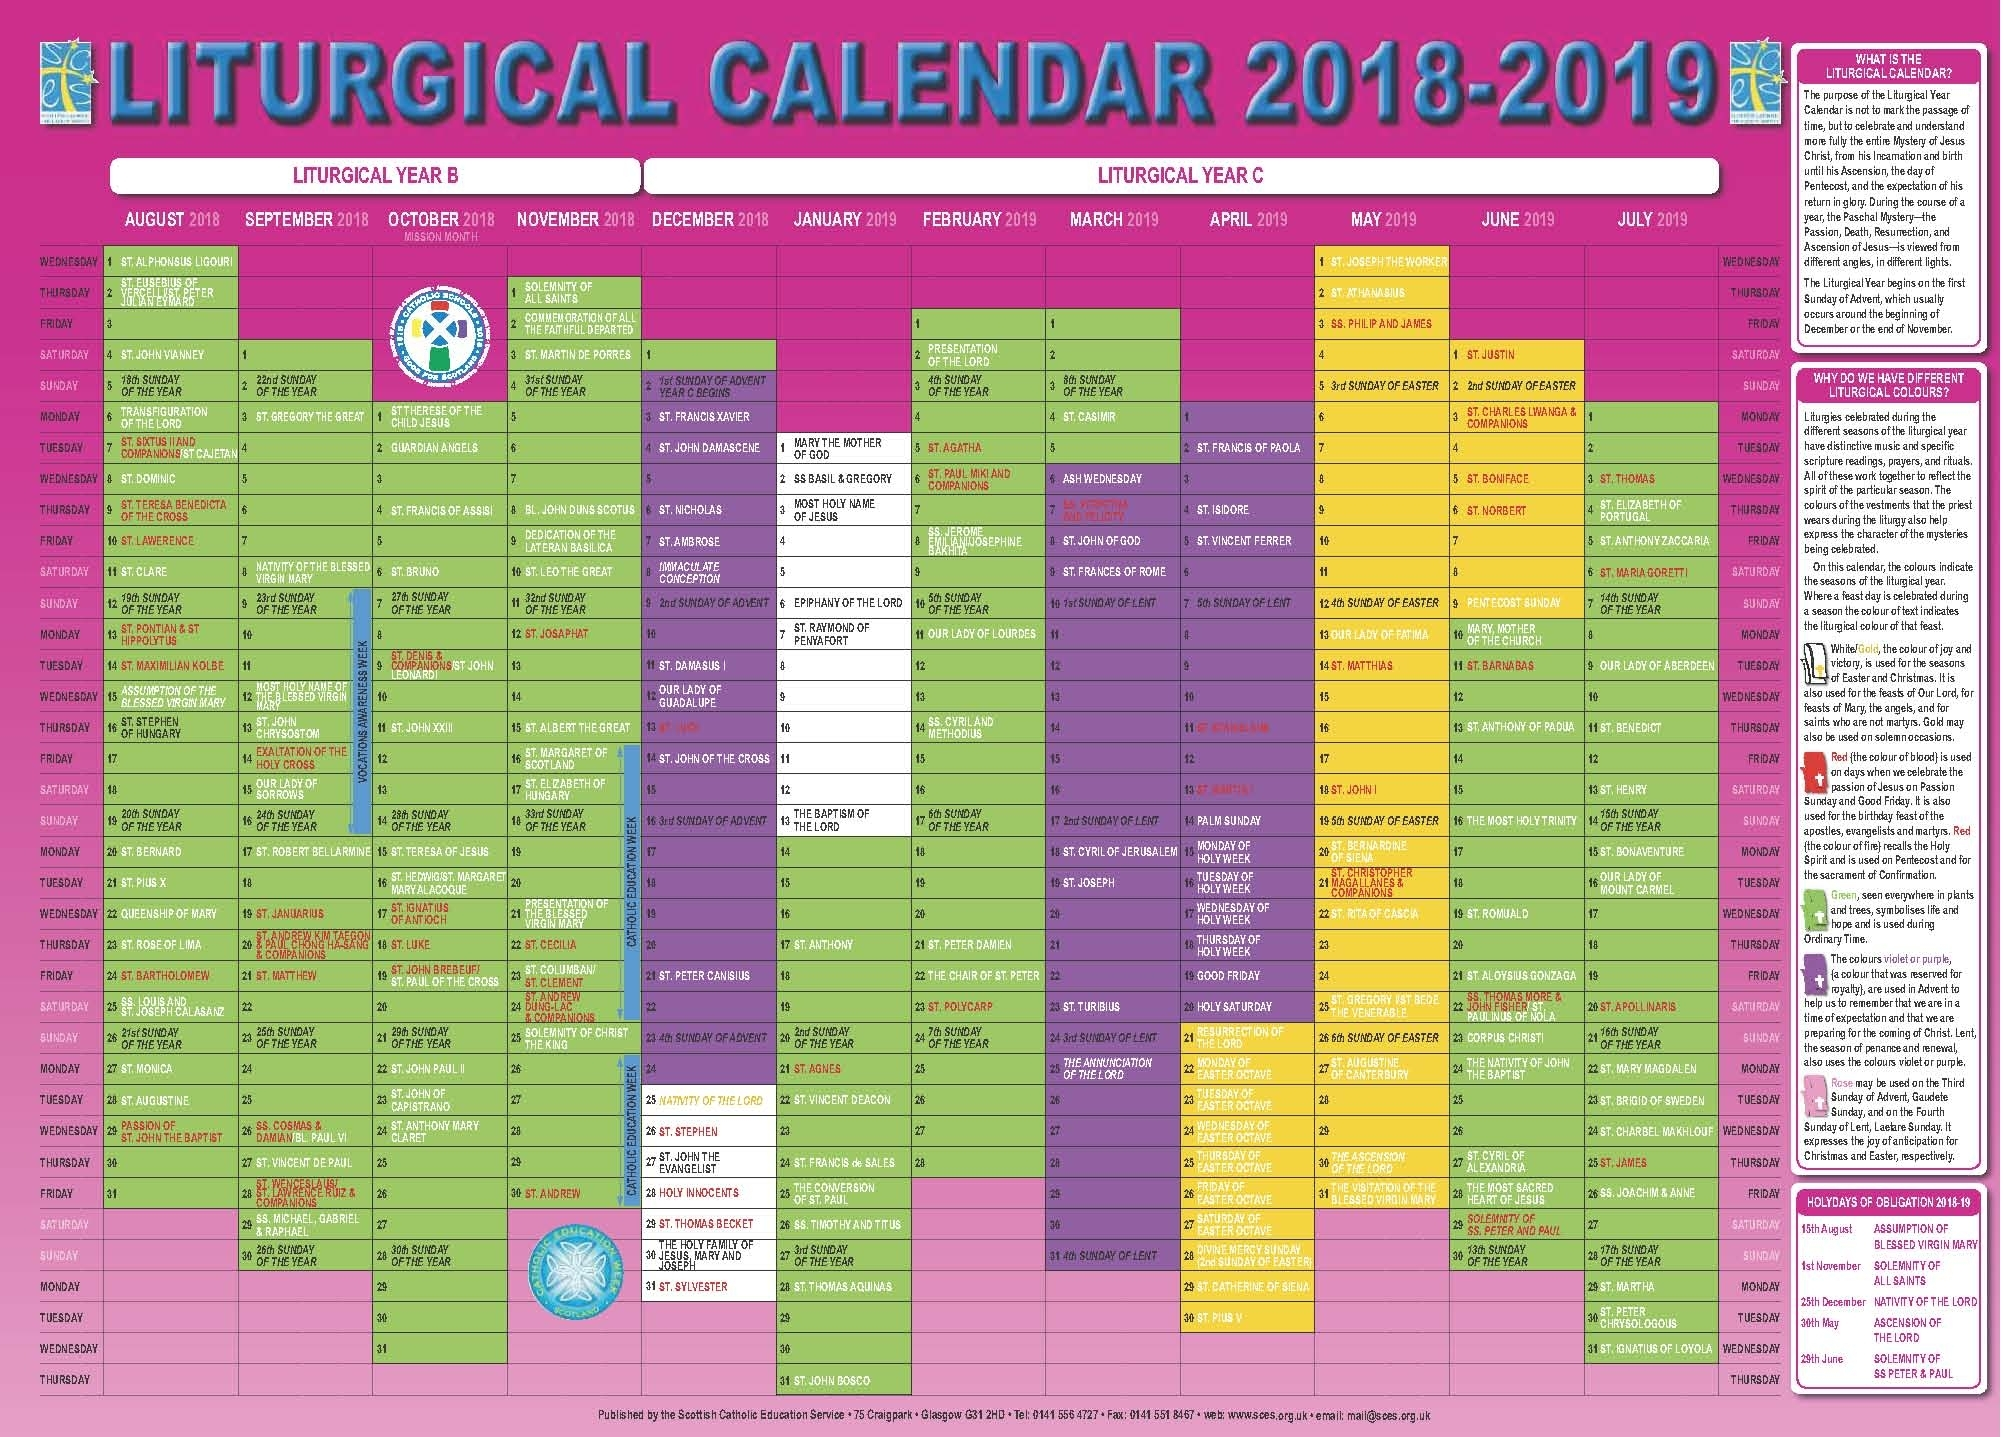 Scottish Catholic Education Service | Sces | Liturgical regarding Liturgical Calendar 2019 2020 Catholic